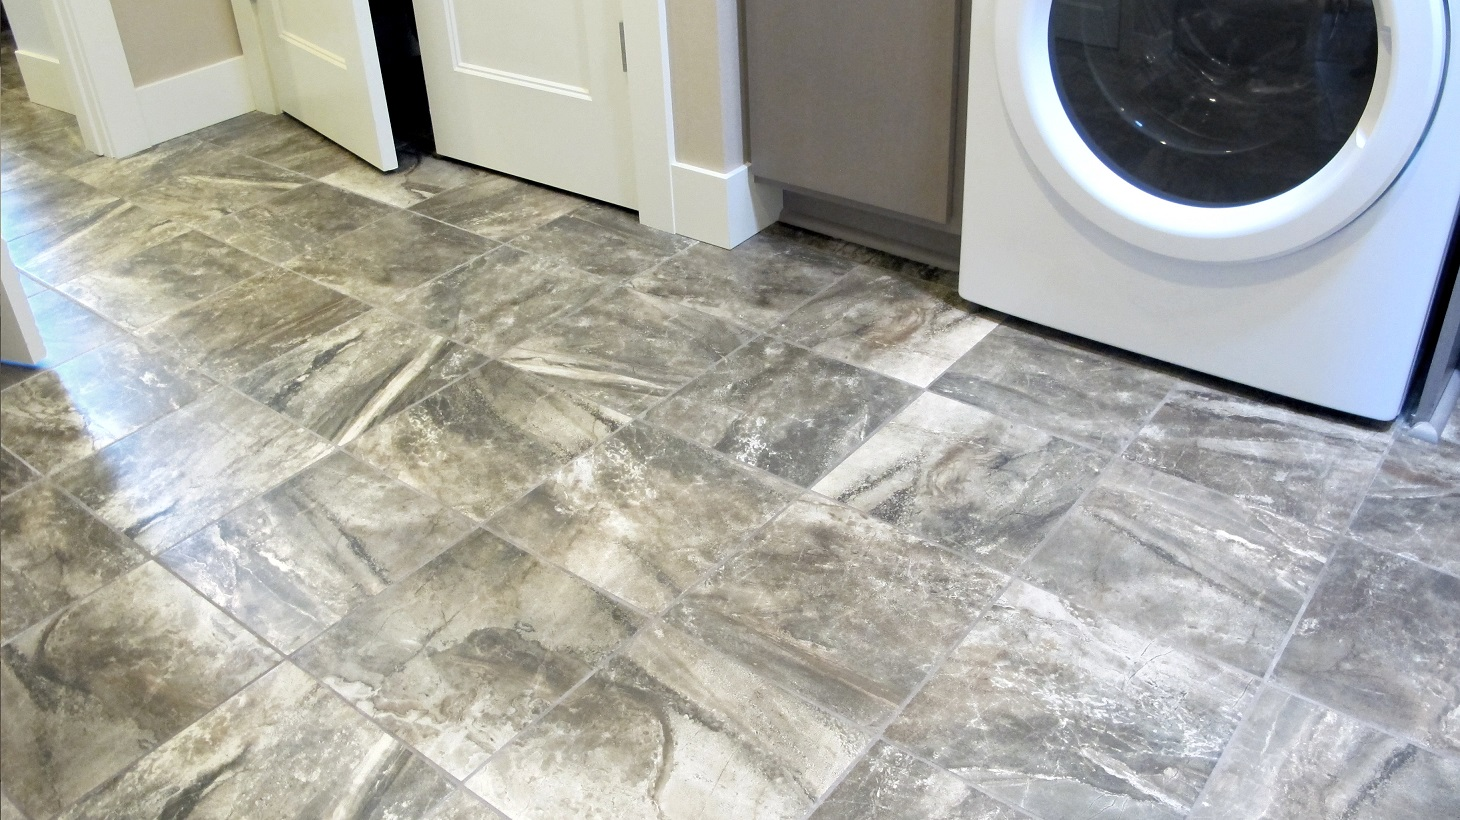 Riviera dream laundry room white washer dryer american olean danya riverbed 12x12 brown pattern porcelain ceramic tile dailygadgetfo Image collections